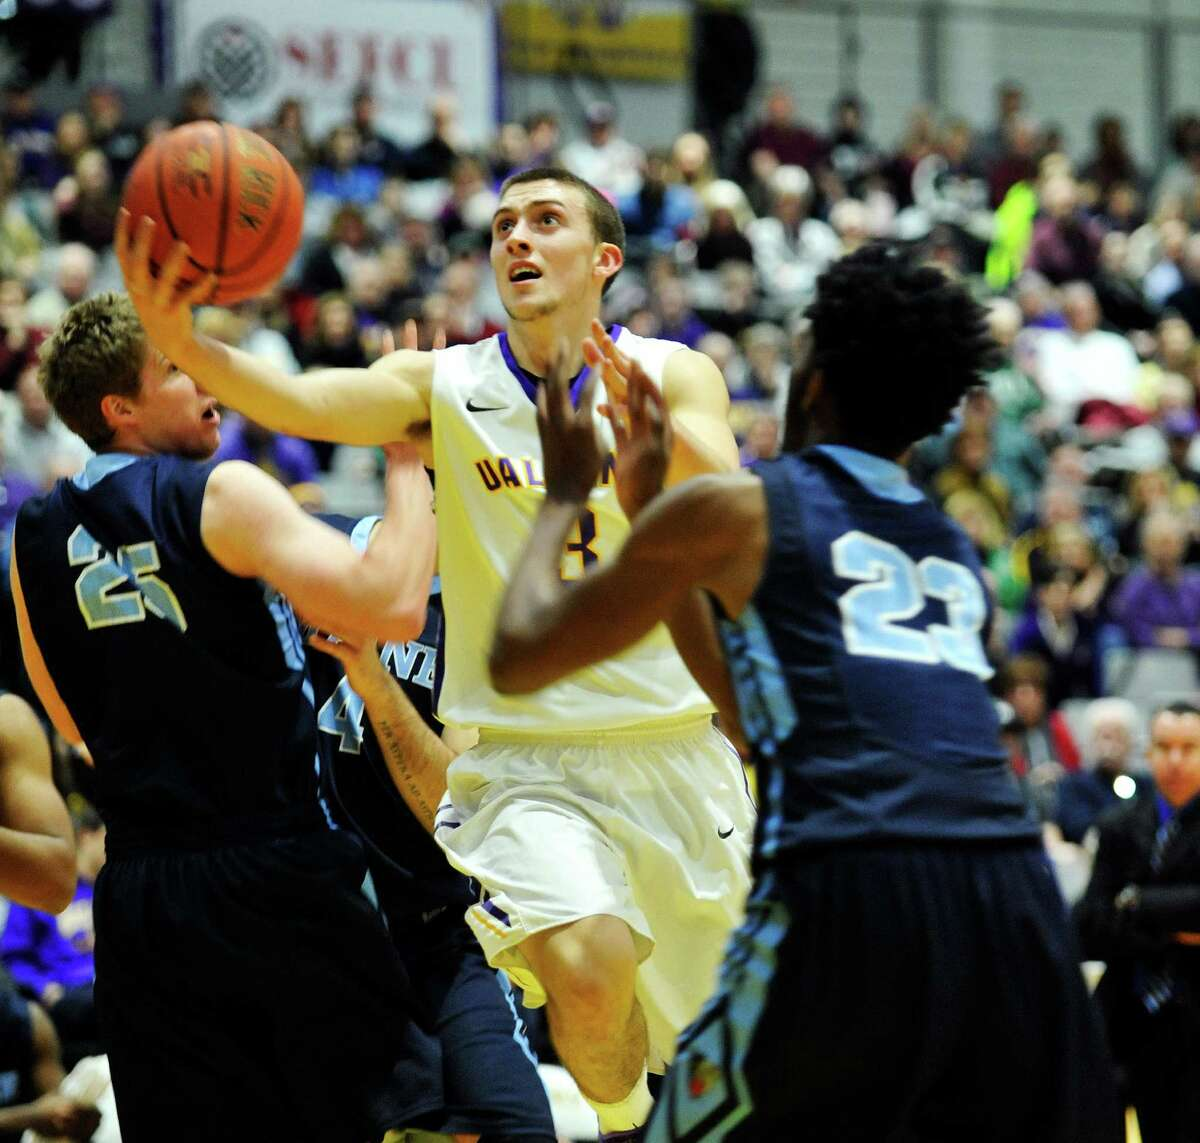 Joe Cremo of the UAlbany drives to the basket through two Maine players during their game on Sunday, Feb. 14, 2016, in Albany, N.Y. (Paul Buckowski / Times Union)